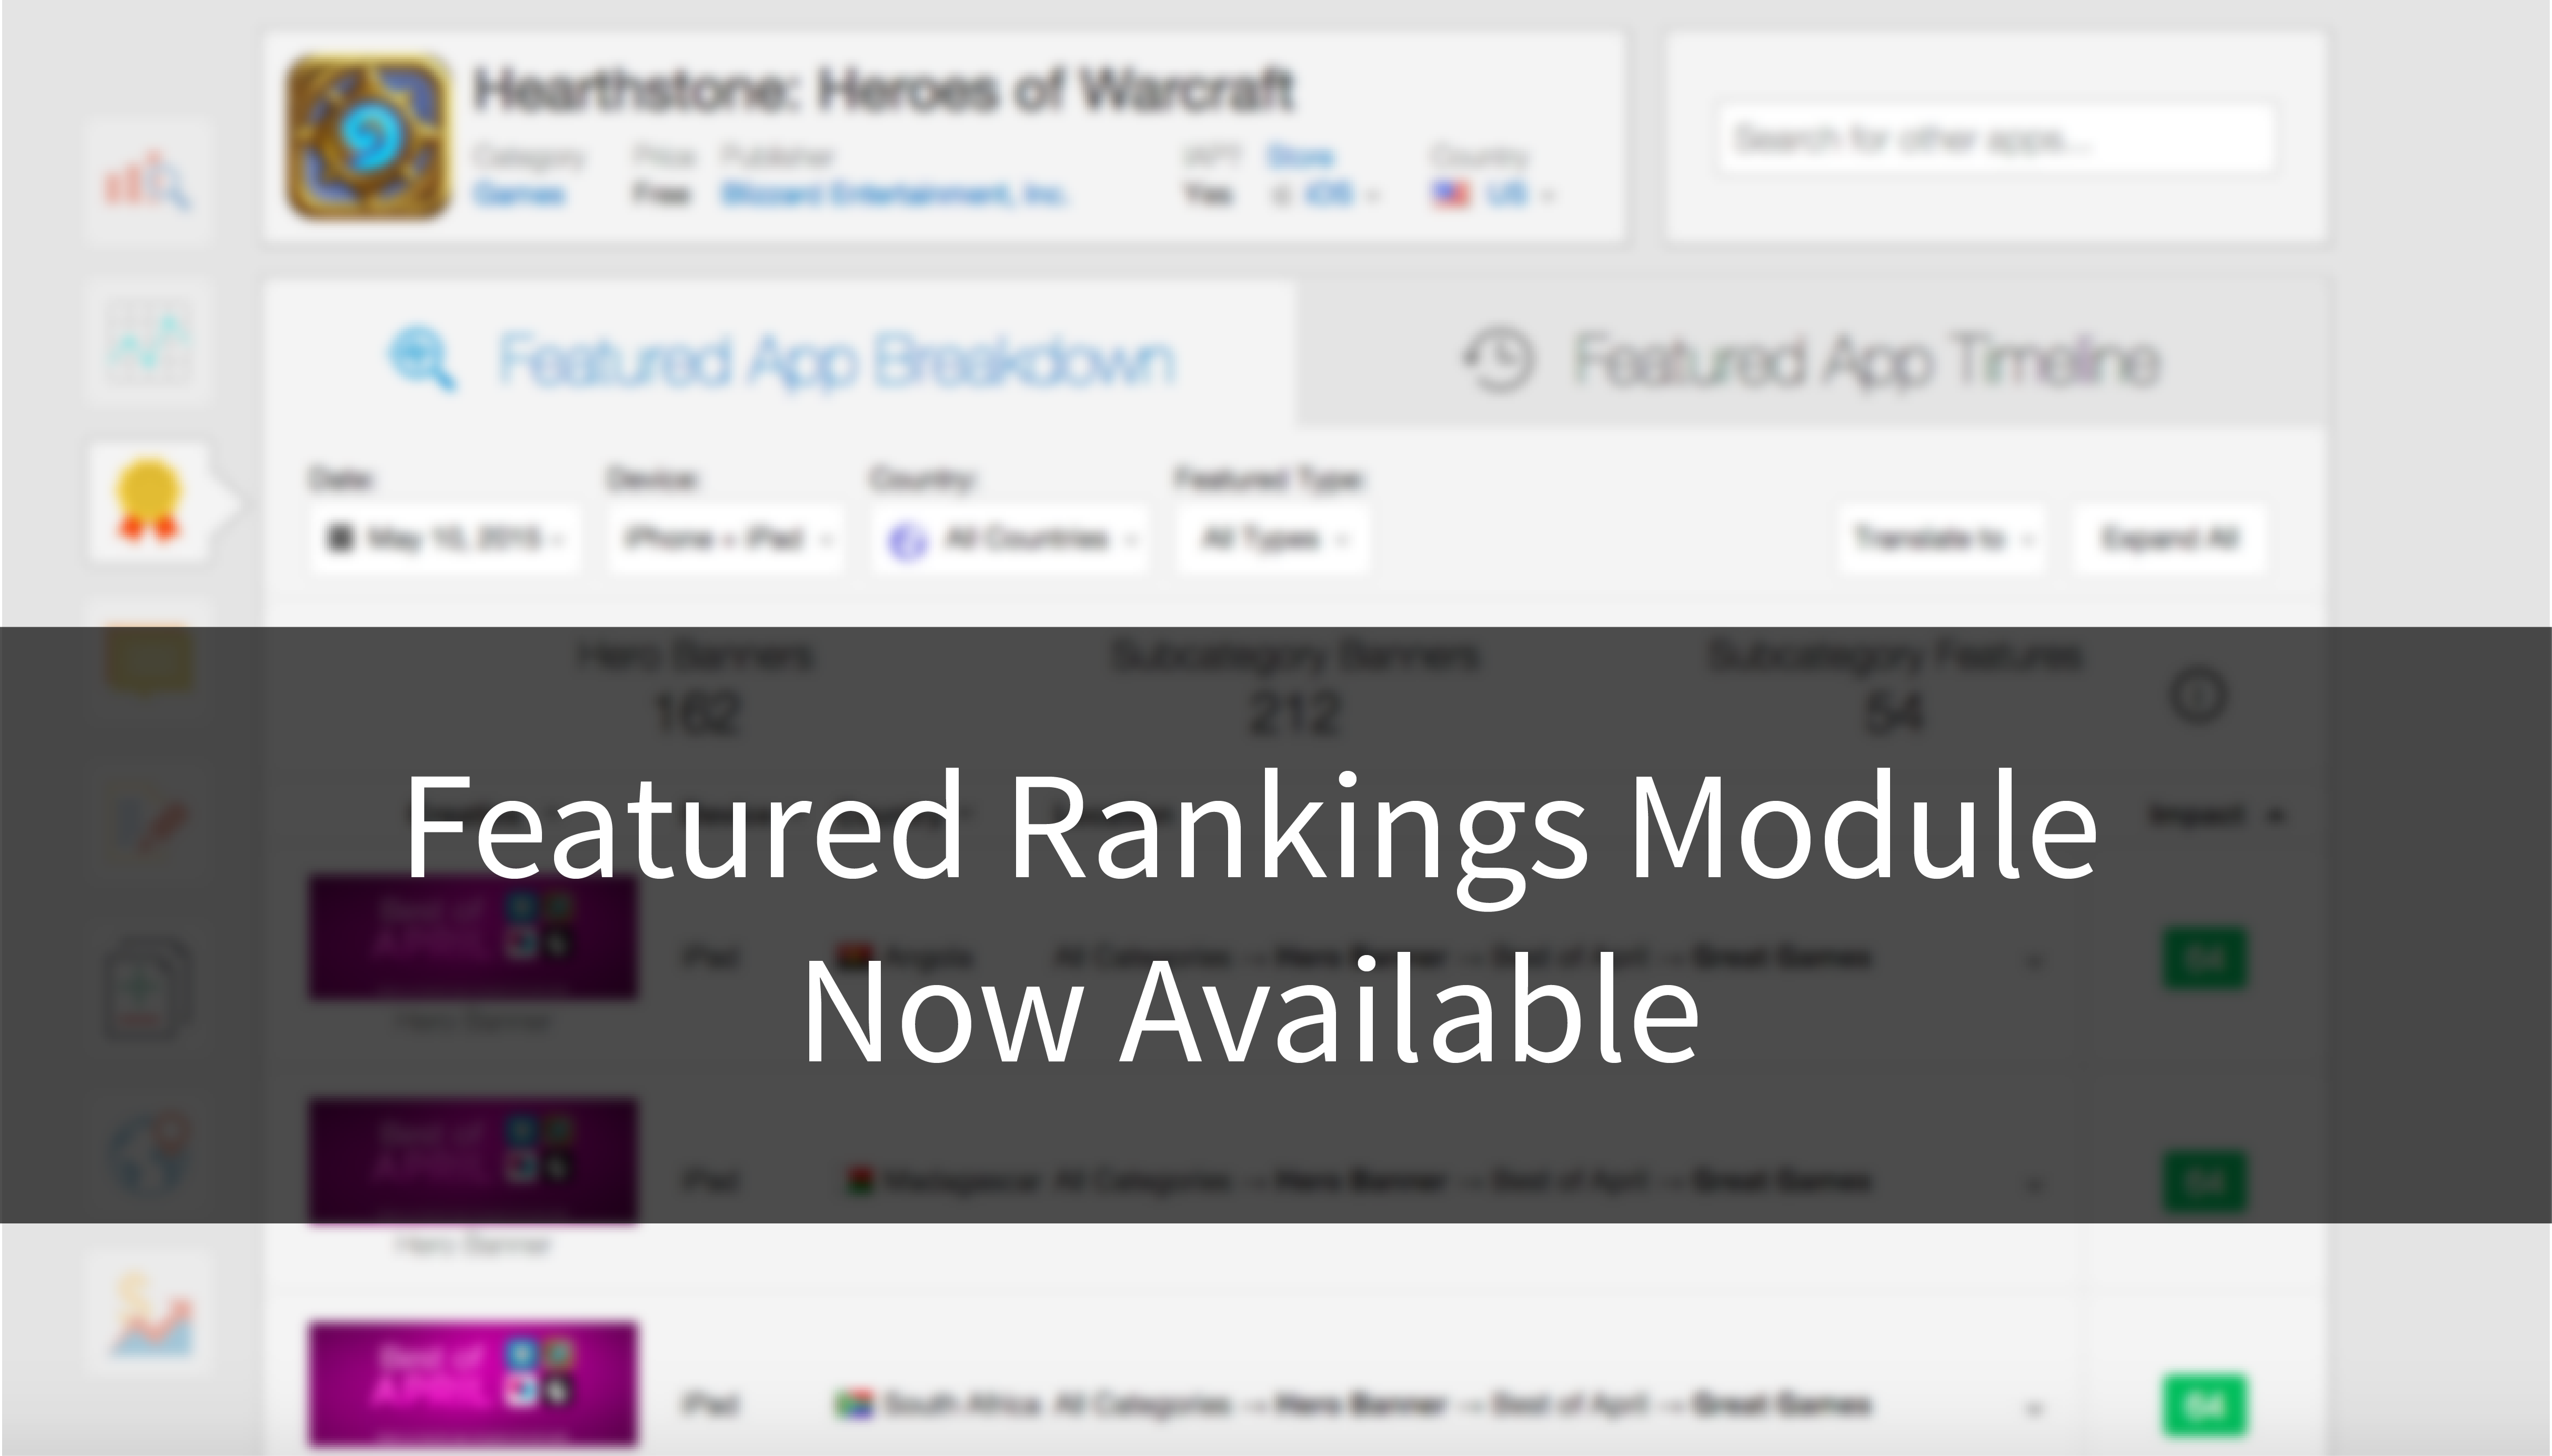 Featured Rankings Module Now Available